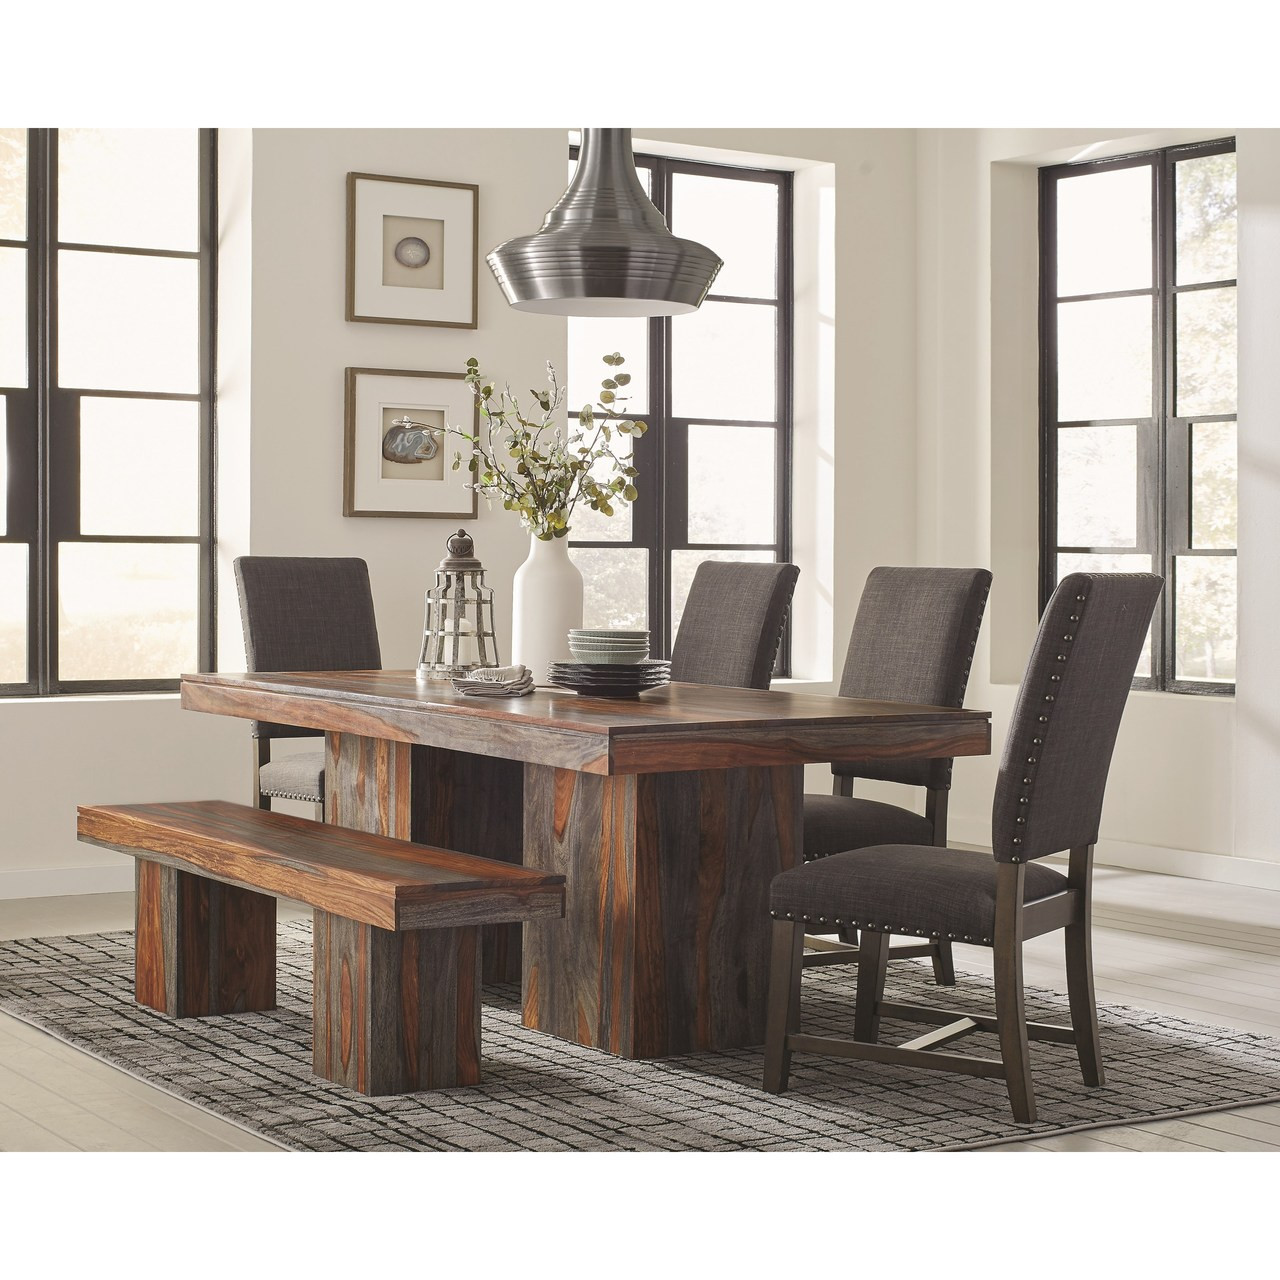 C107481 Binghamton Rustic Dining Table 6 Piece Set with Bench